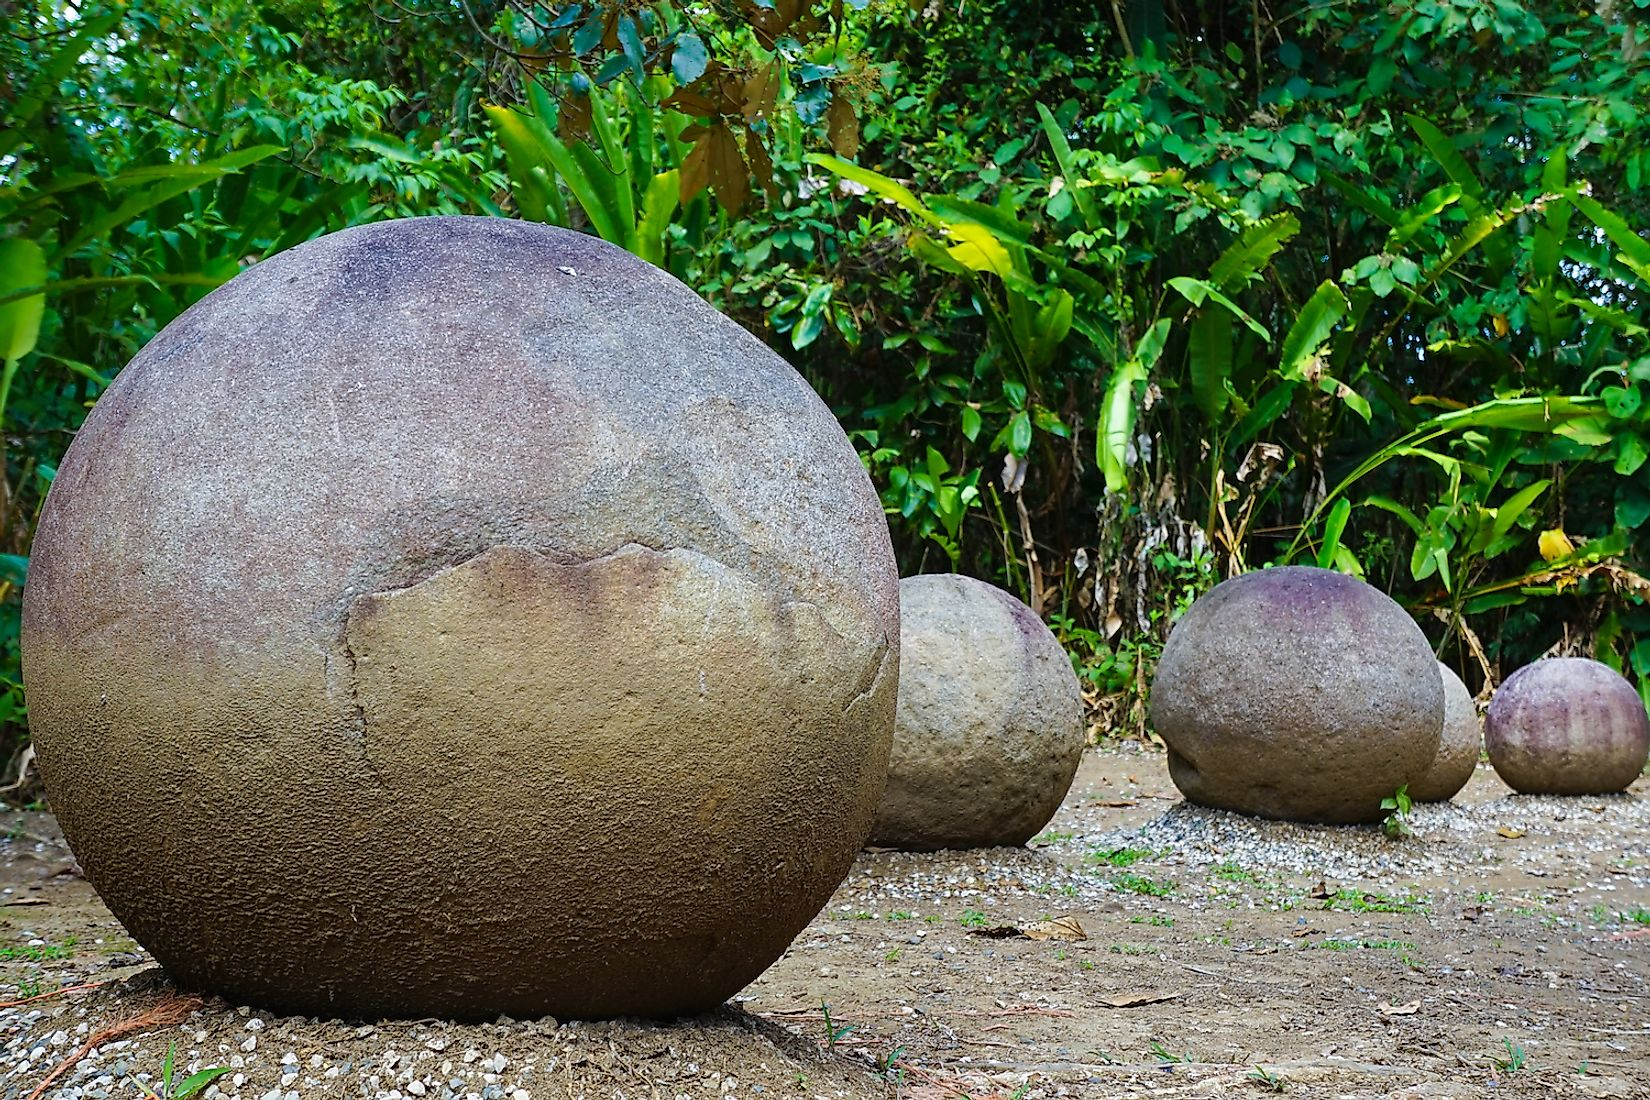 Precolumbian Chiefdom Settlements with Stone Spheres of the Diquís - Costa Rica UNESCO Site. Image credit: Inspired By Maps/Shutterstock.com